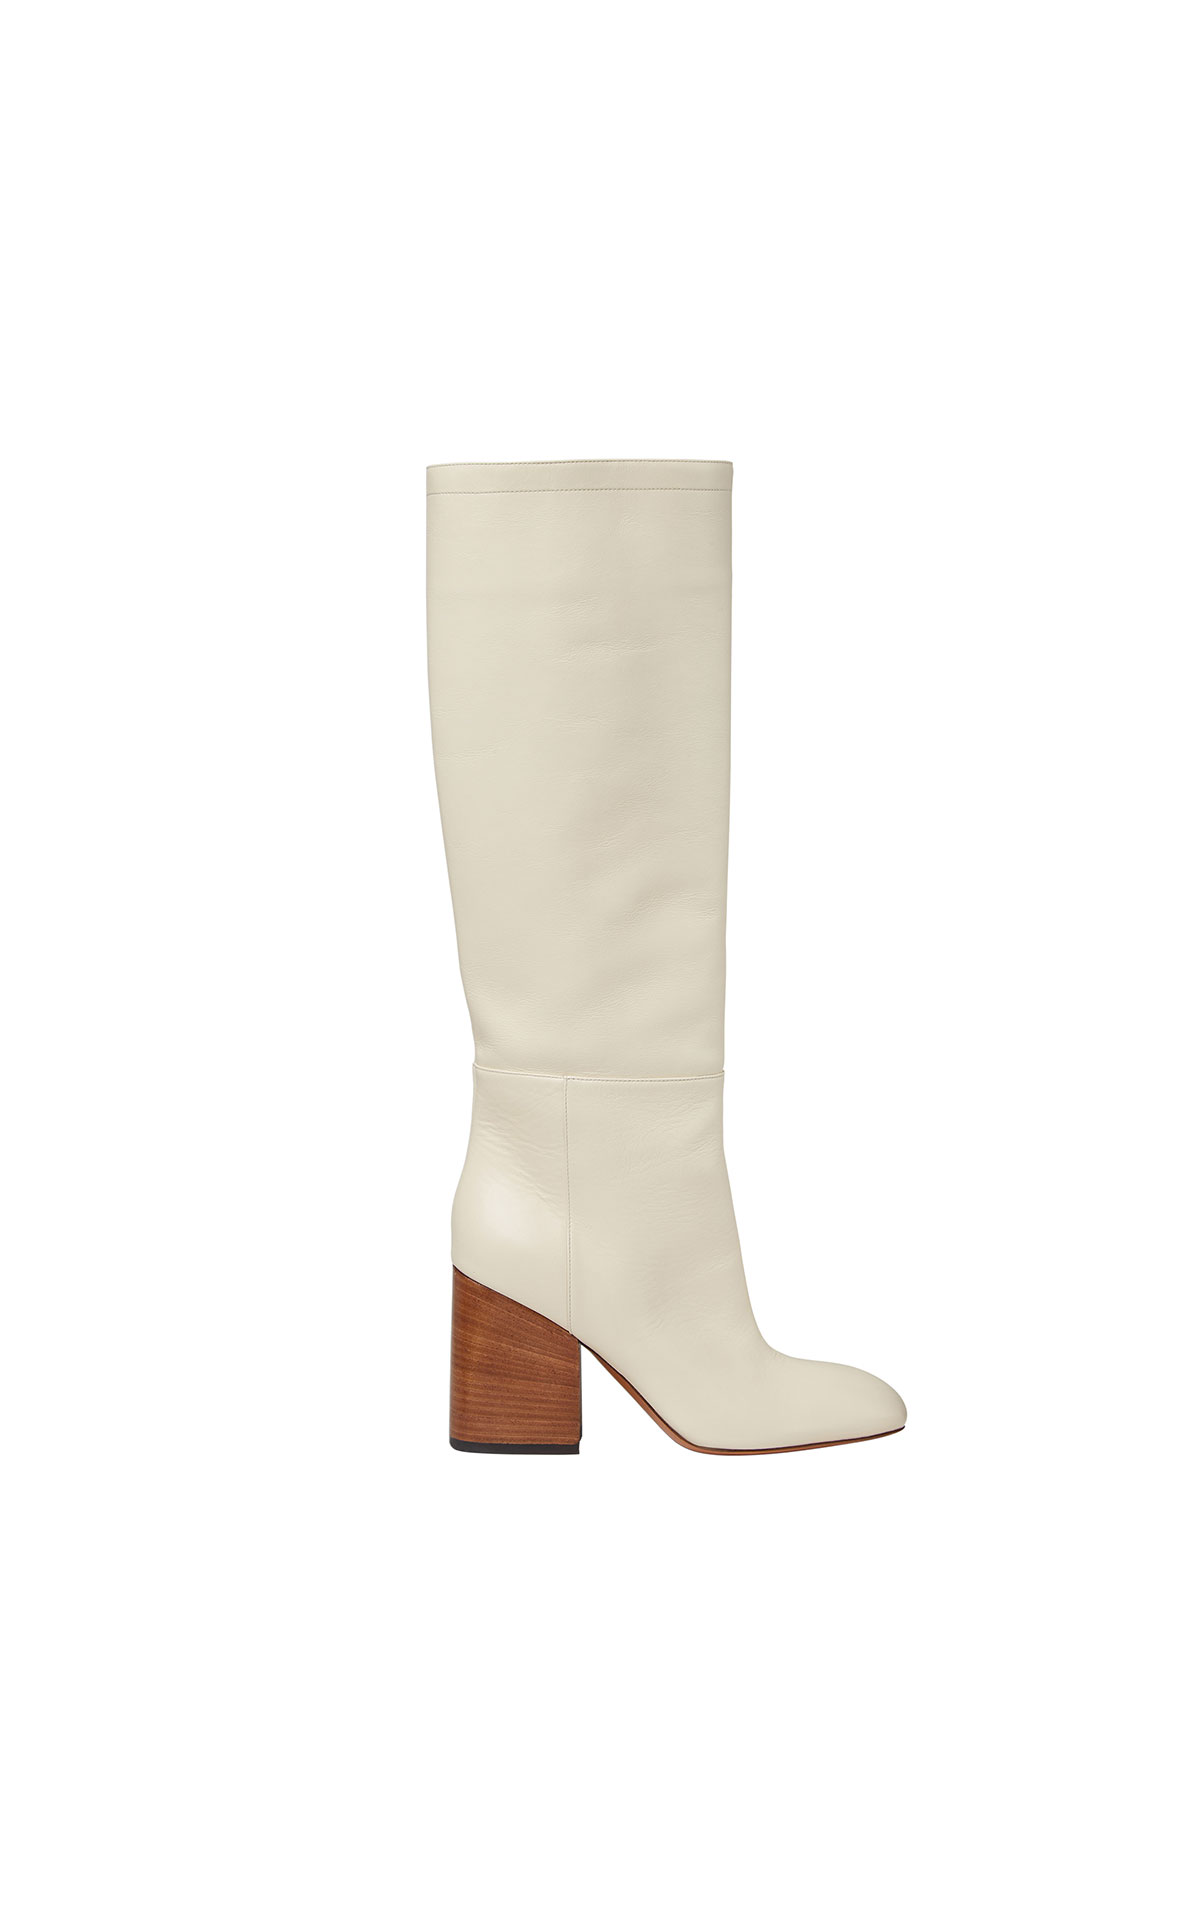 Marni Stivale calf boot from Bicester Village